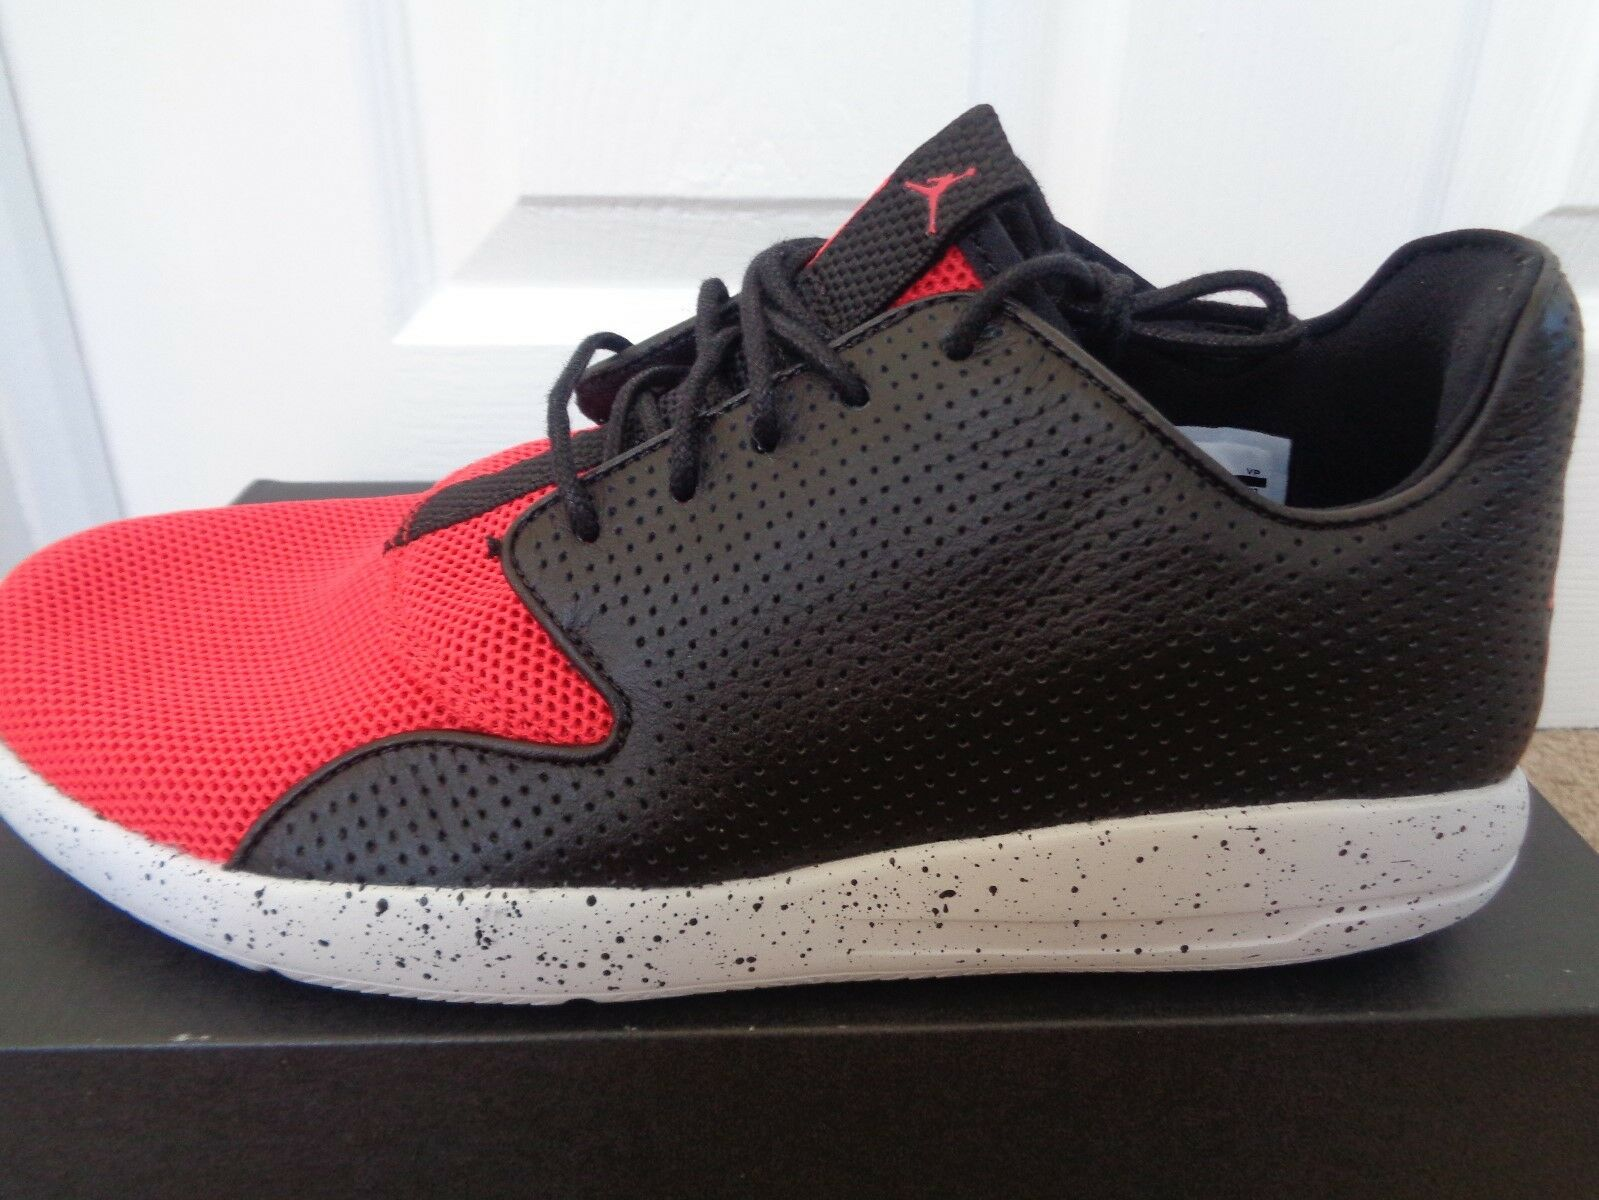 Nike Air Jordan eclipse trainers  chaussures  724010 018 uk 6.5 eu 40.5 us 7.5 NEW+BOX